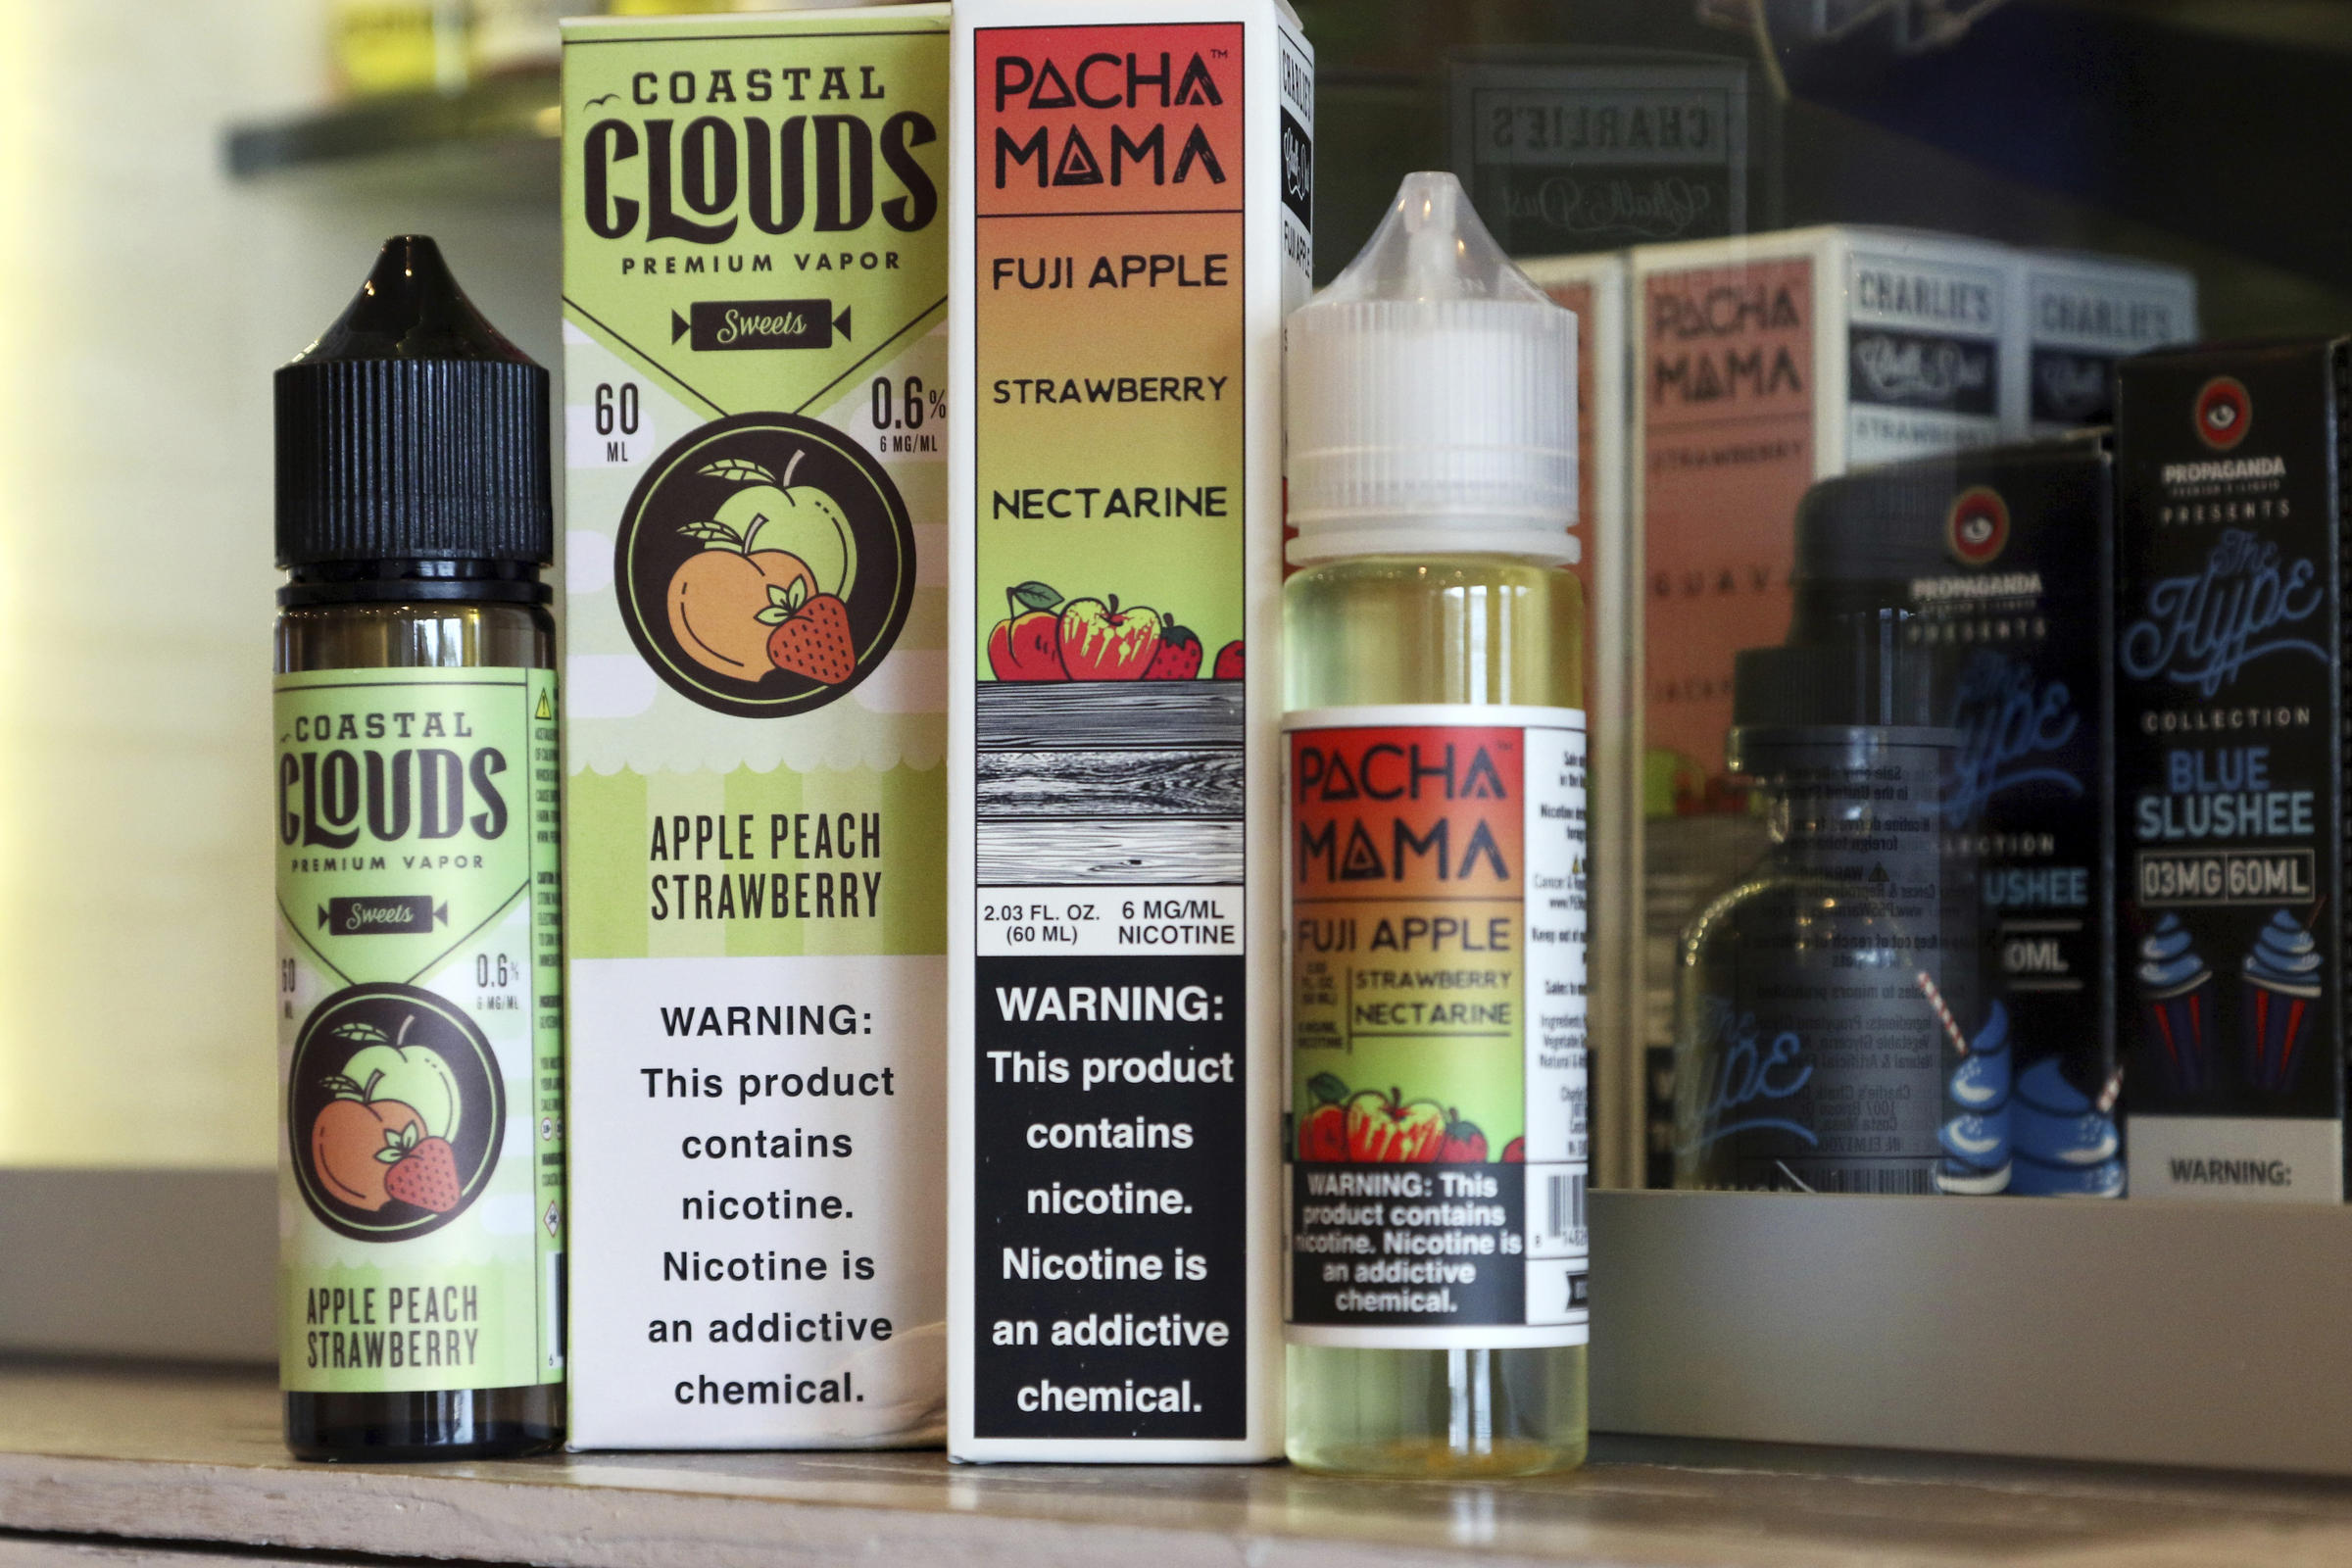 Hawaii Flavored E Cigarette Ban